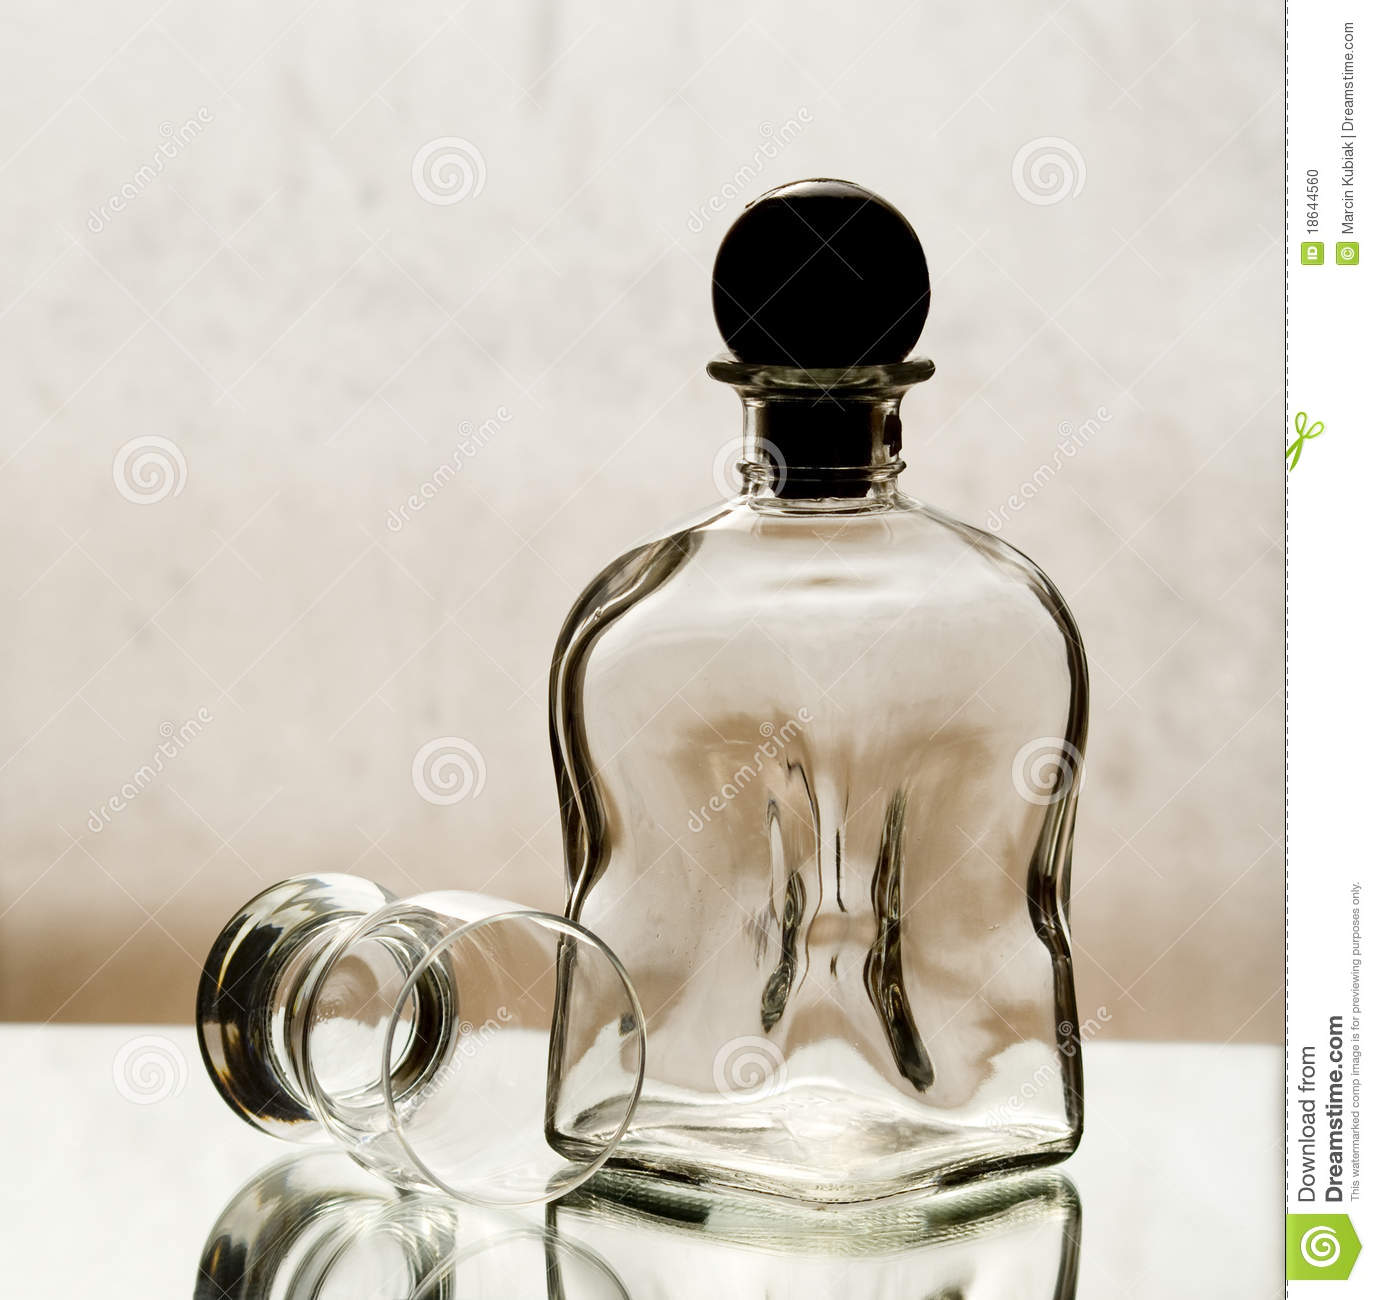 dating bottle glass Key to table fields : base mark  the glass works mould and number identification on the base of each bottle, these marks can be used to identify and date the bottles.